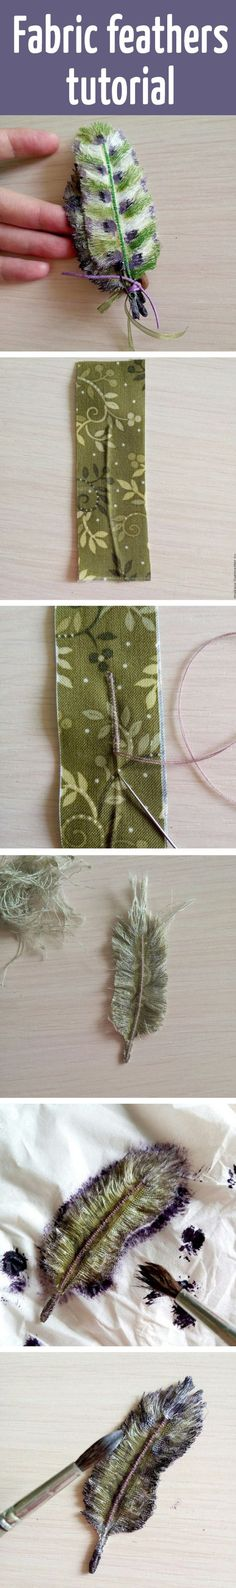 Fabric feathers tutorial